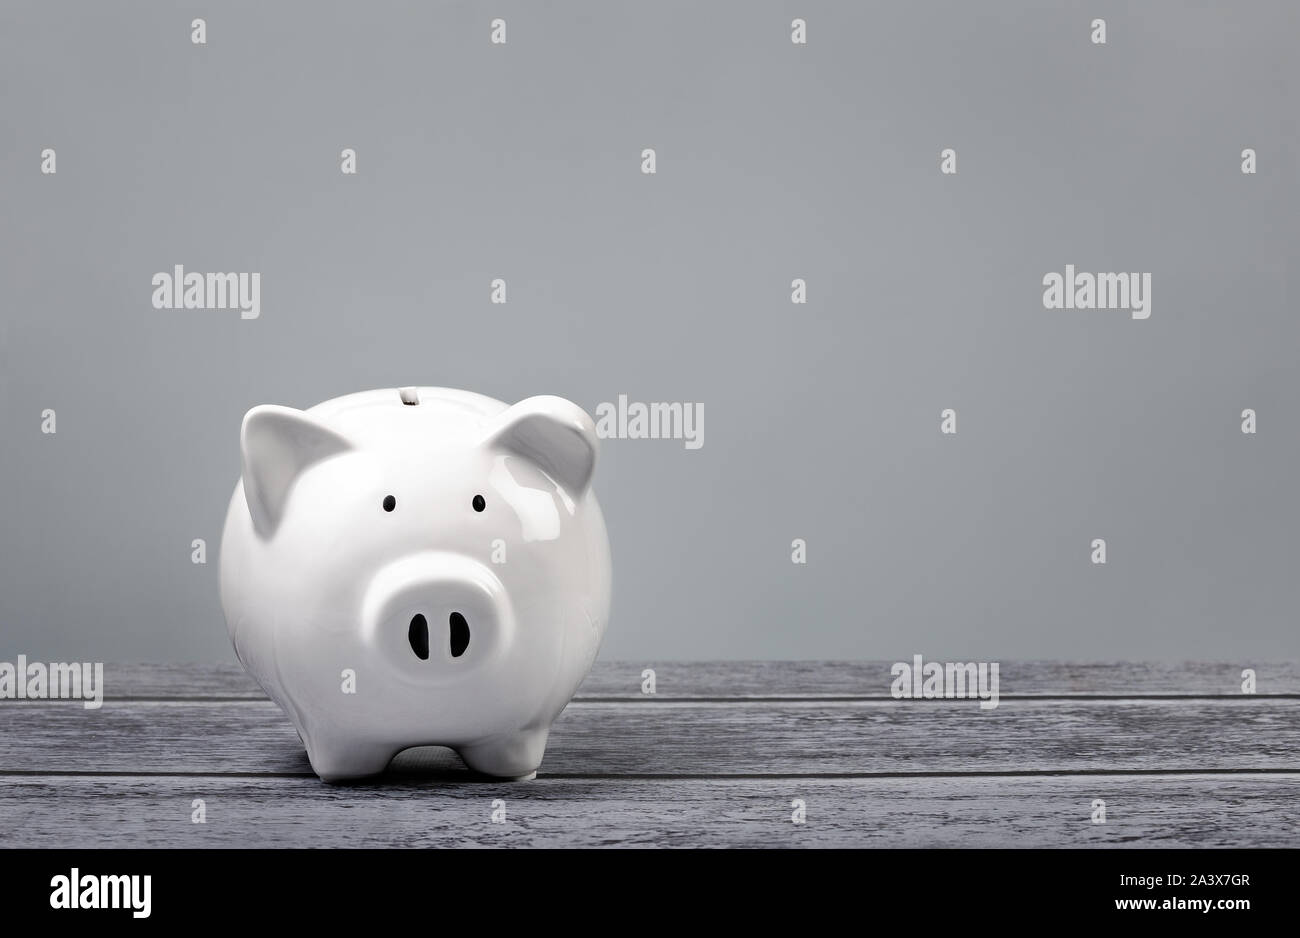 Cute white Piggy Bank over a blue and grey background. Stock Photo